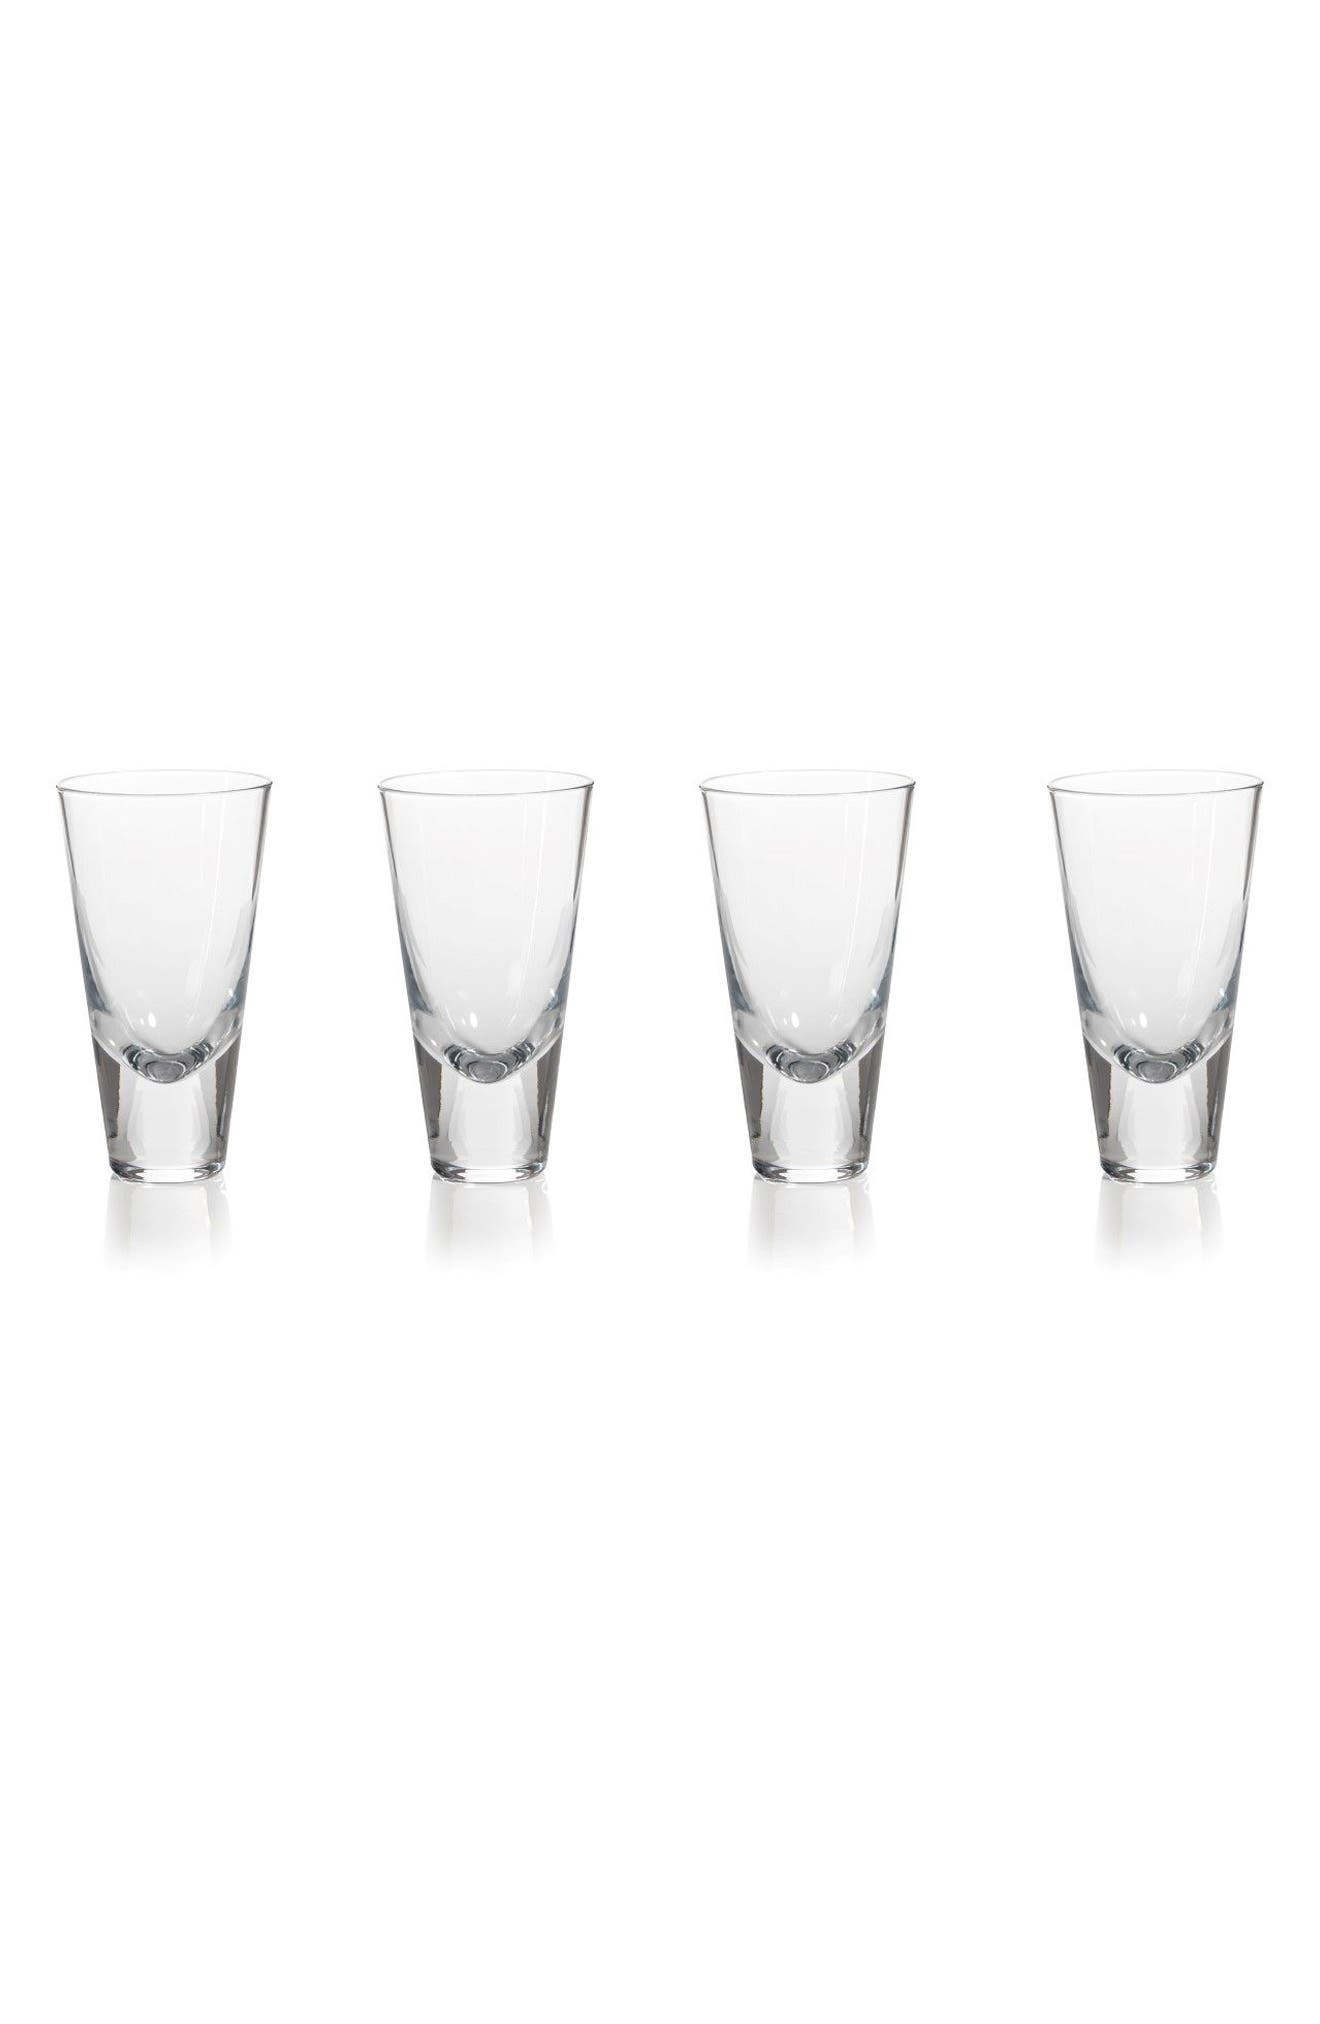 Anatole Set of 4 Drinking Glasses,                         Main,                         color, Clear